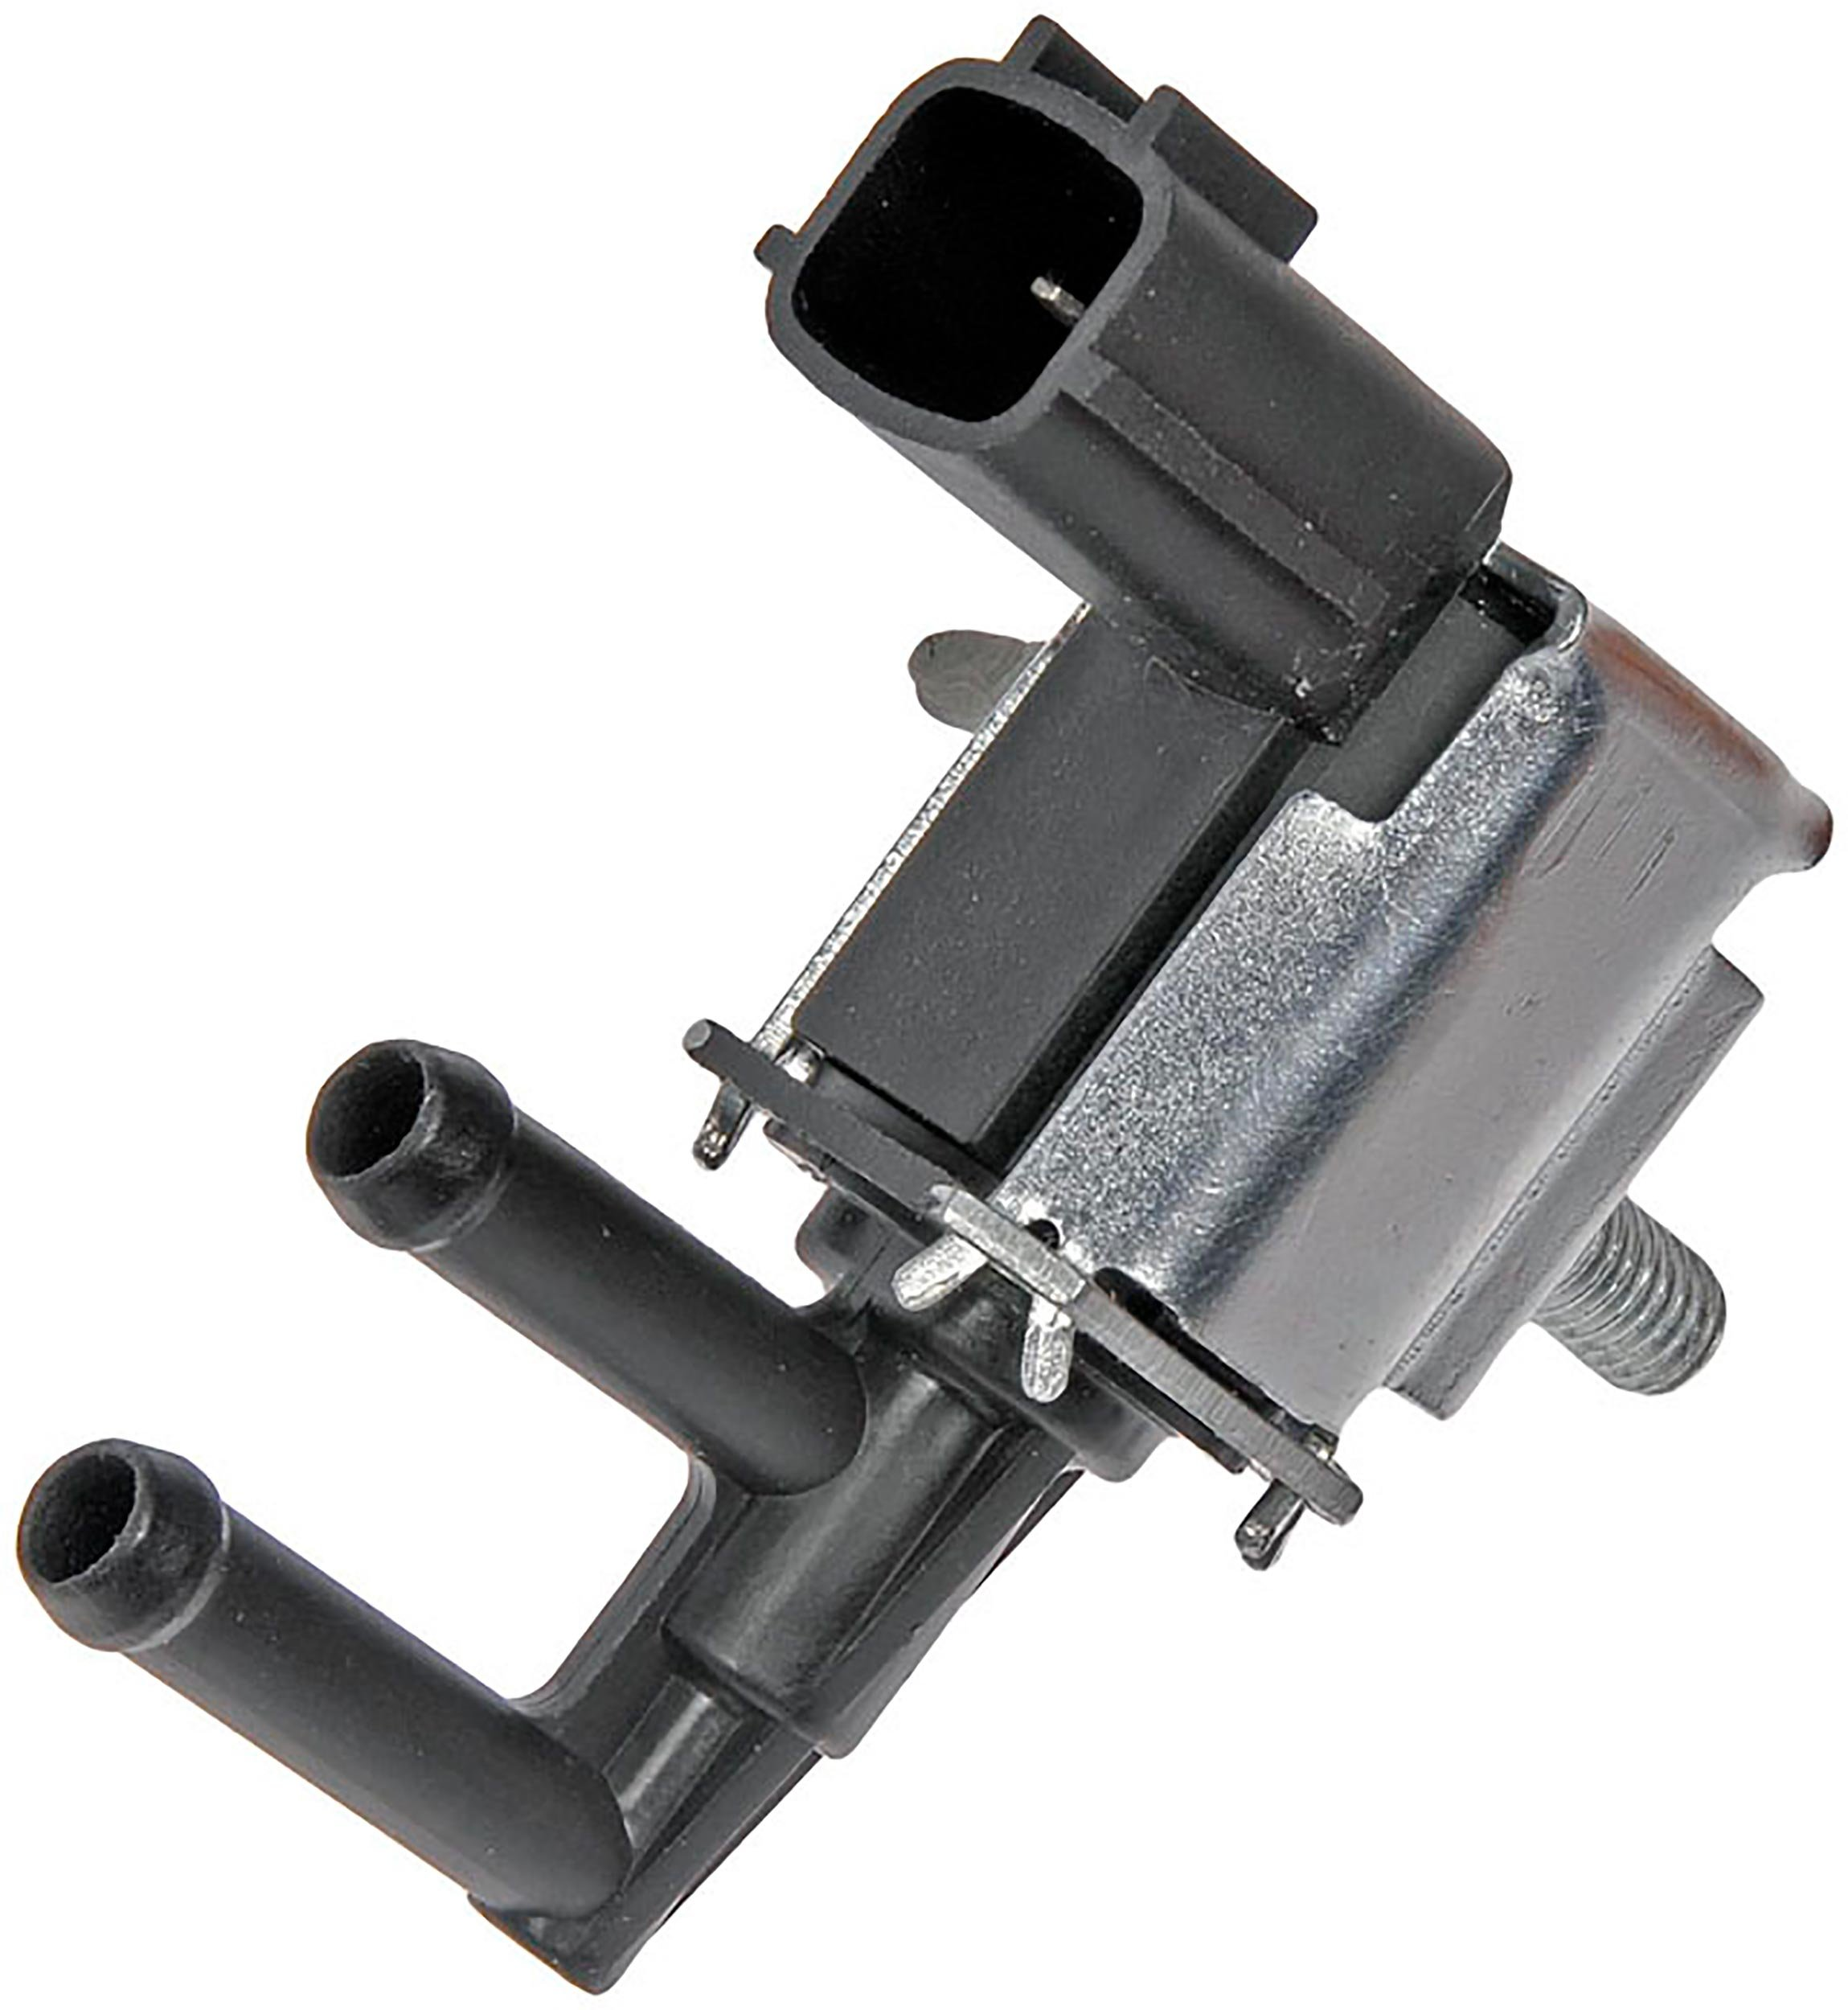 APDTY 138714 Vapor Canister Purge Valve Fits Select 2003-2010 Infiniti FX35, FX45, G35, M35, M45, Q45 / Nissan 350z, Altima, Maxima, Murano, Quest (Replaces 14930CD700, 14930CD70A)